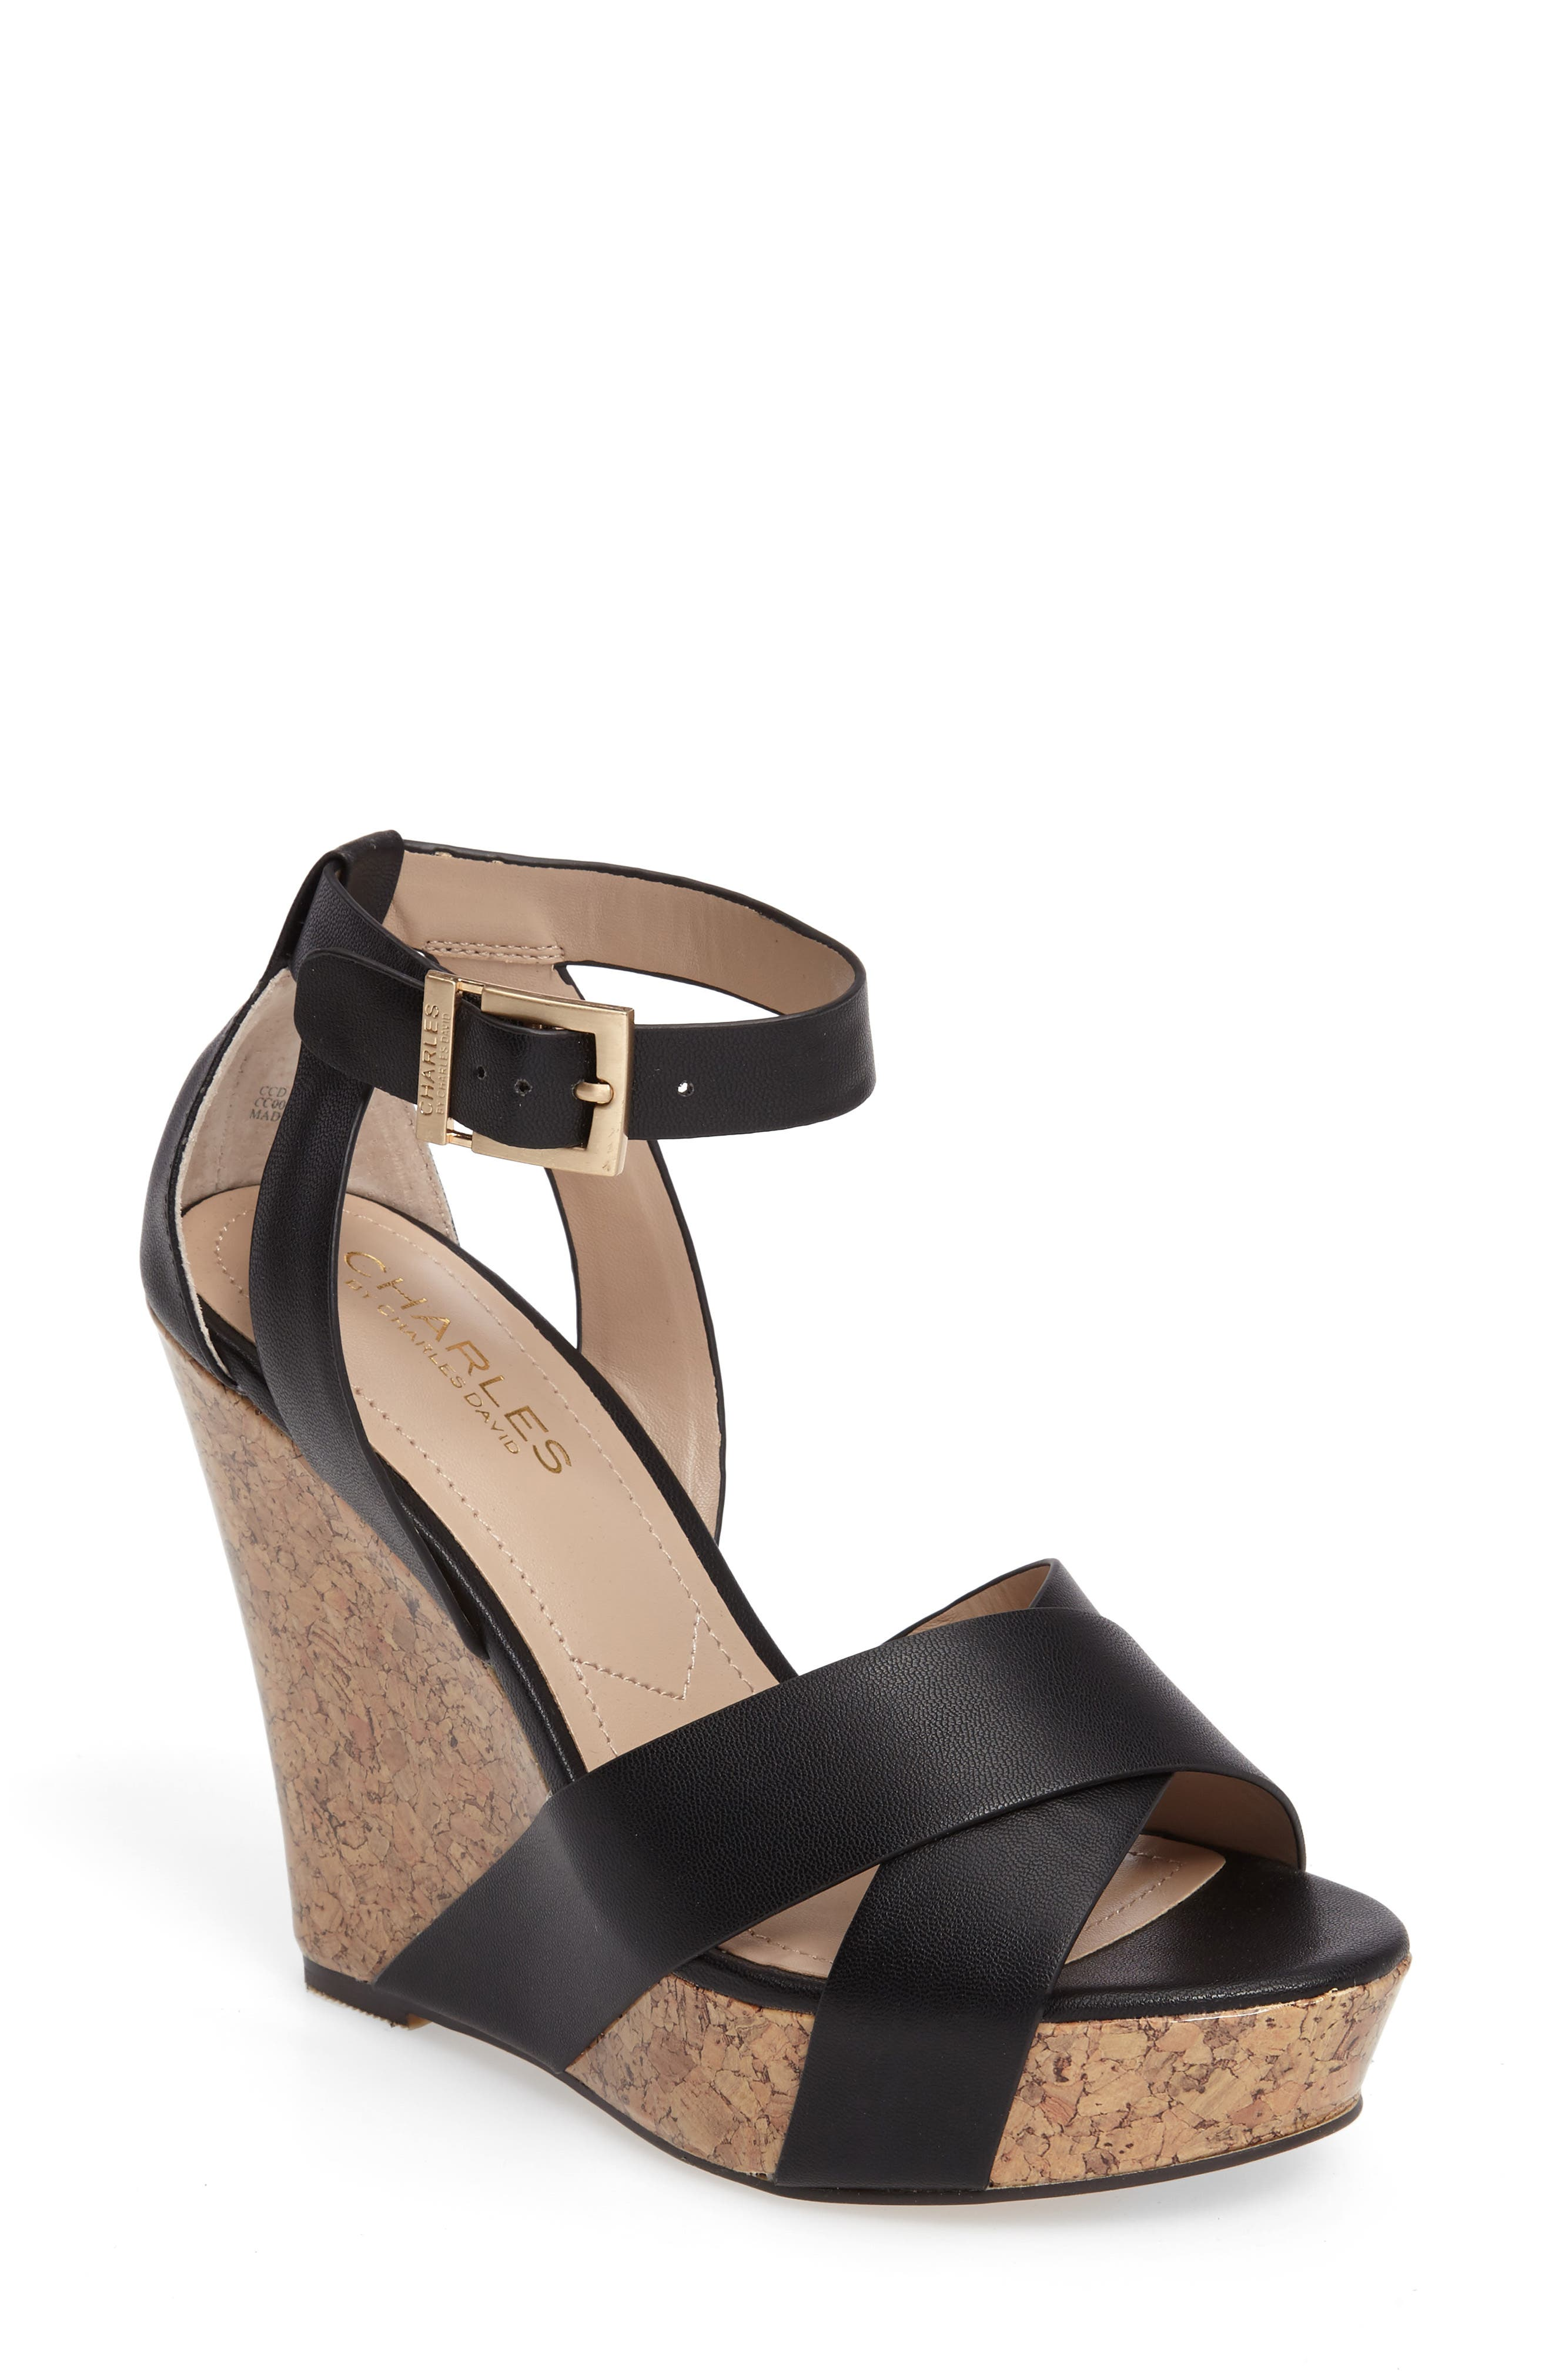 Amsterdam Platform Wedge Sandal,                             Main thumbnail 1, color,